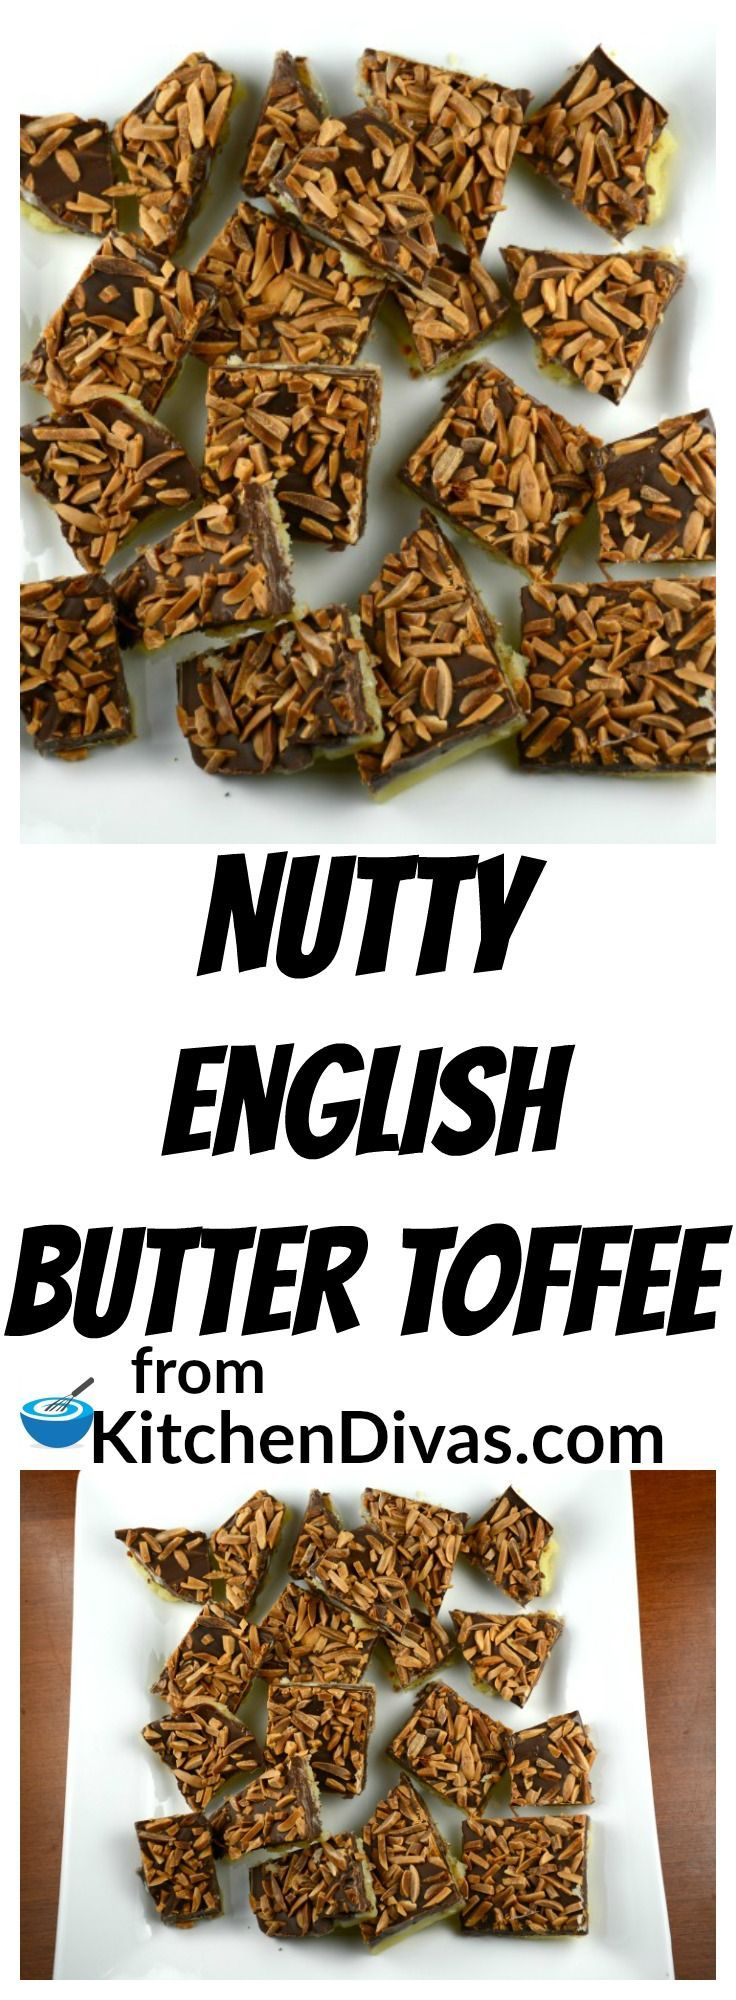 This recipe for Nutty English Butter Toffee is a huge hit.  Every time you serve it.  Every sweet bite is so yummy it is difficult to only have one piece. That is why we can't make it that often.  Come to think of it we have a lot of recipes we don't make that often.